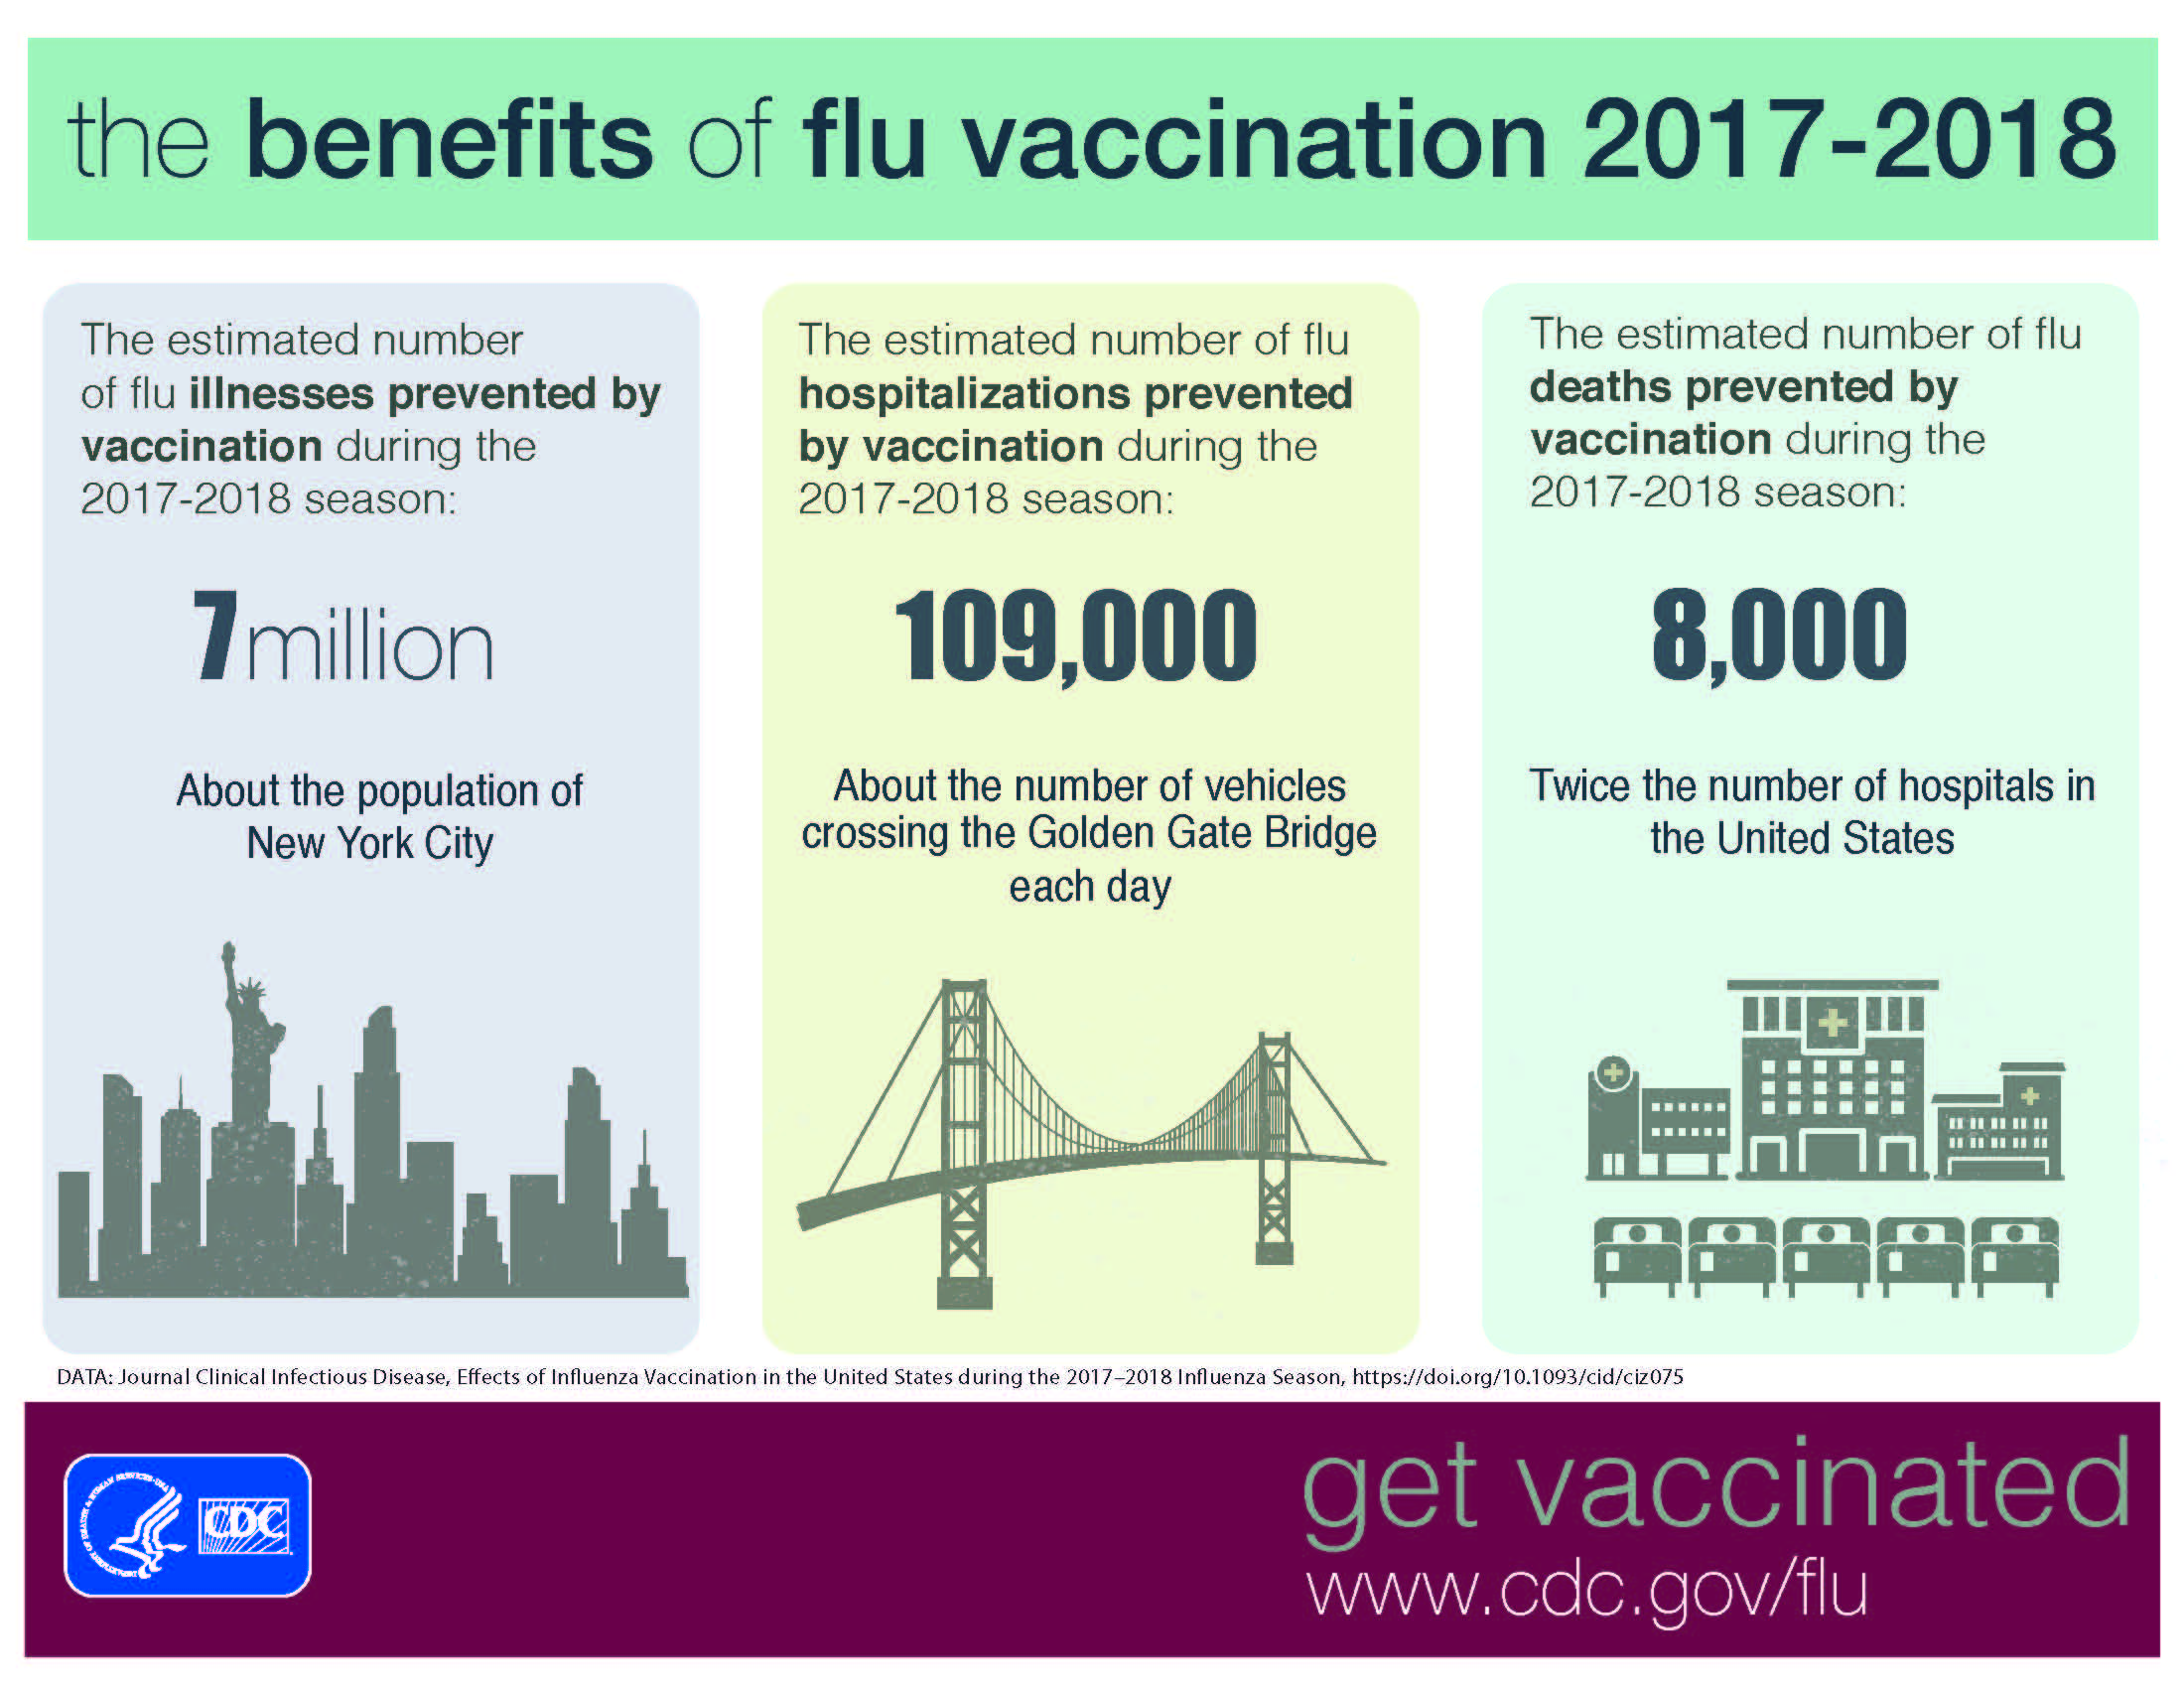 The benefits of flu vaccination 2017-2018